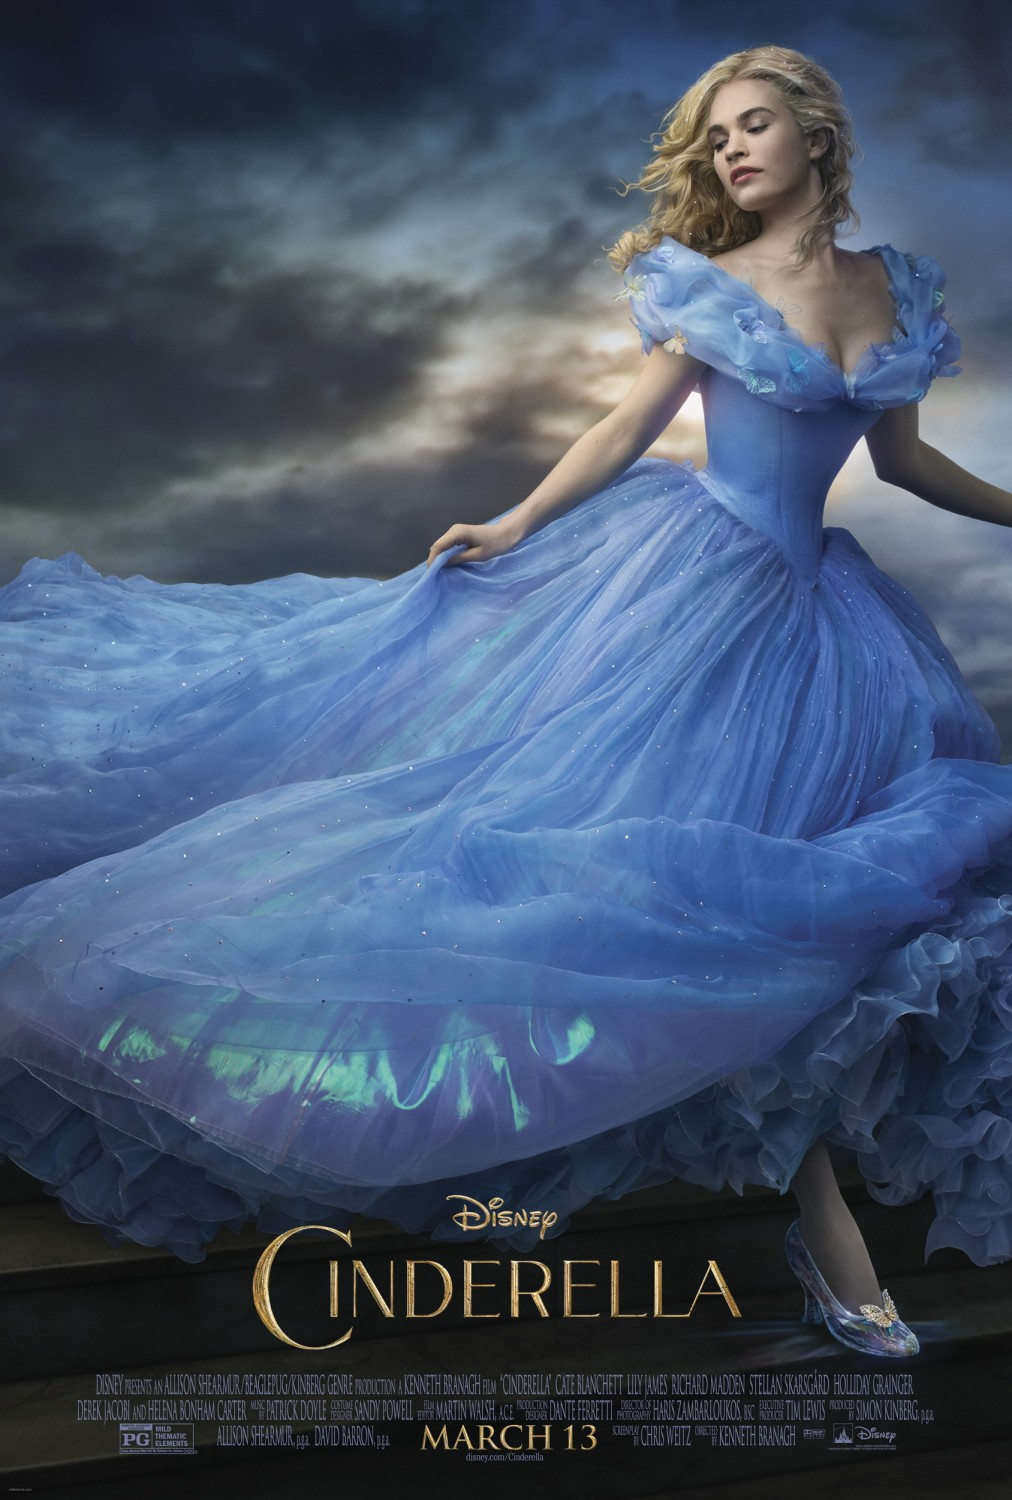 Cinderella film review: Can Disney recapture the magic?